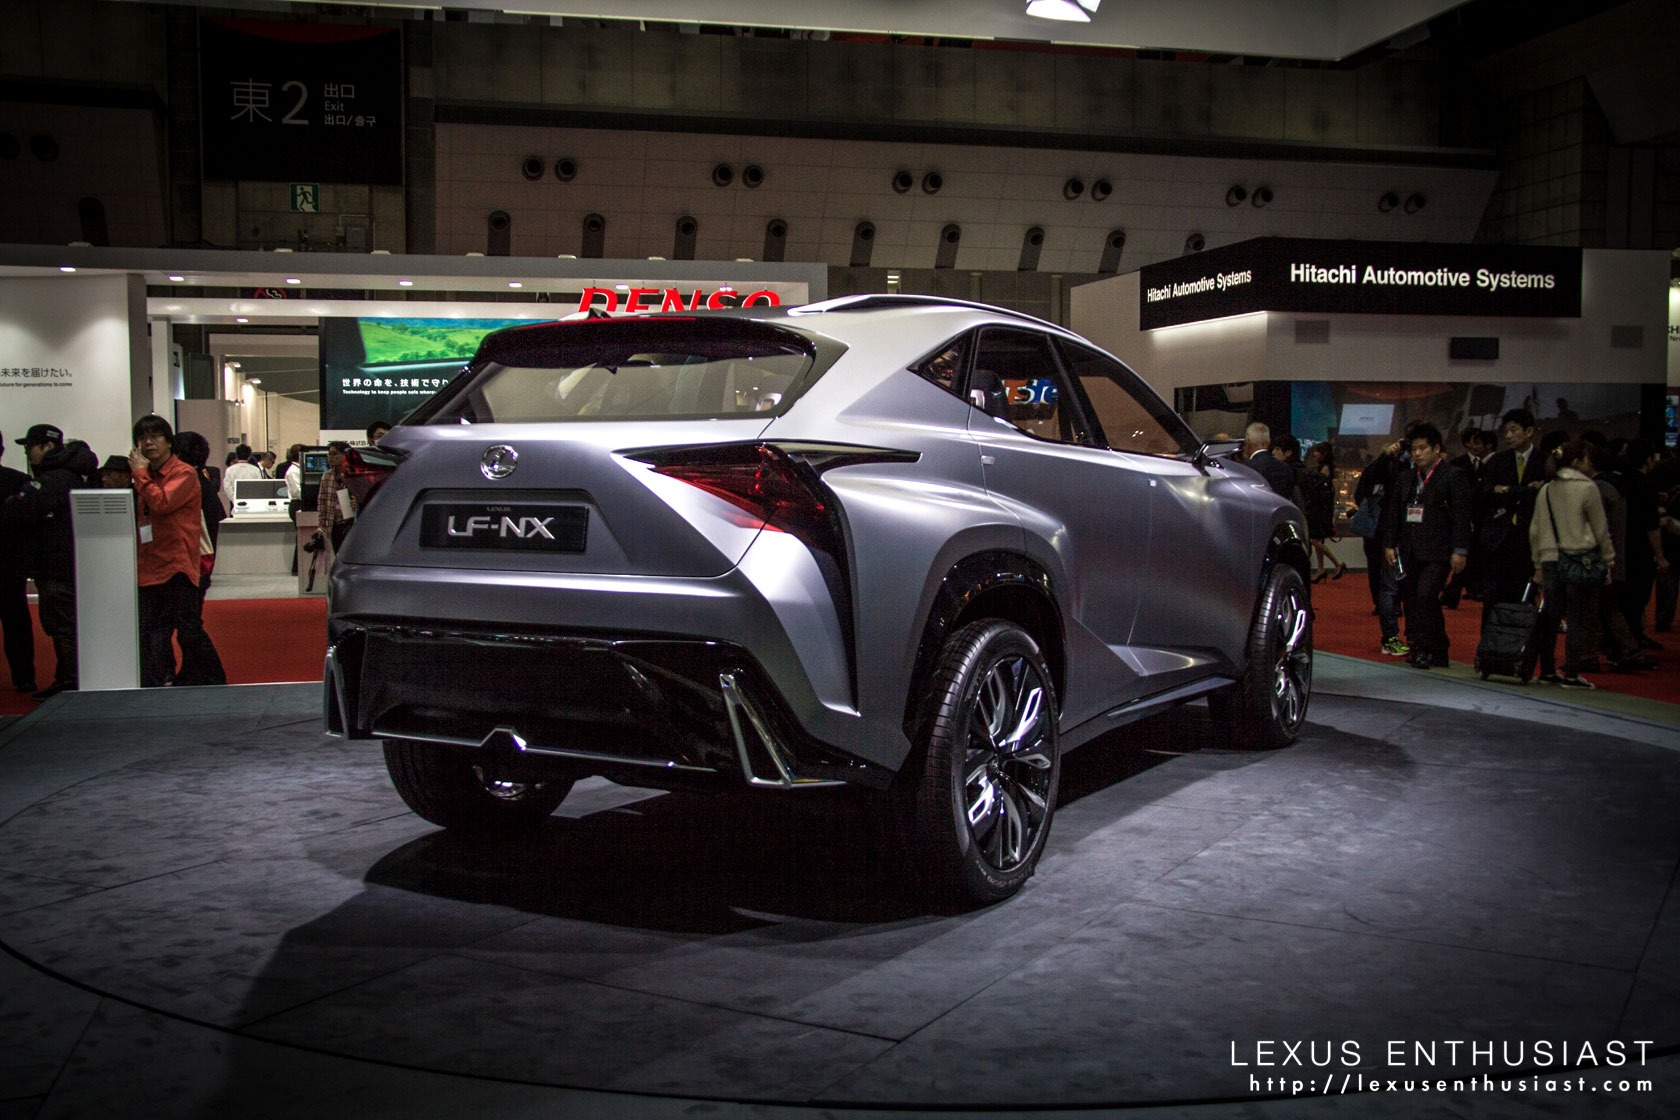 2019 Lexus LF NX Concept photo - 6